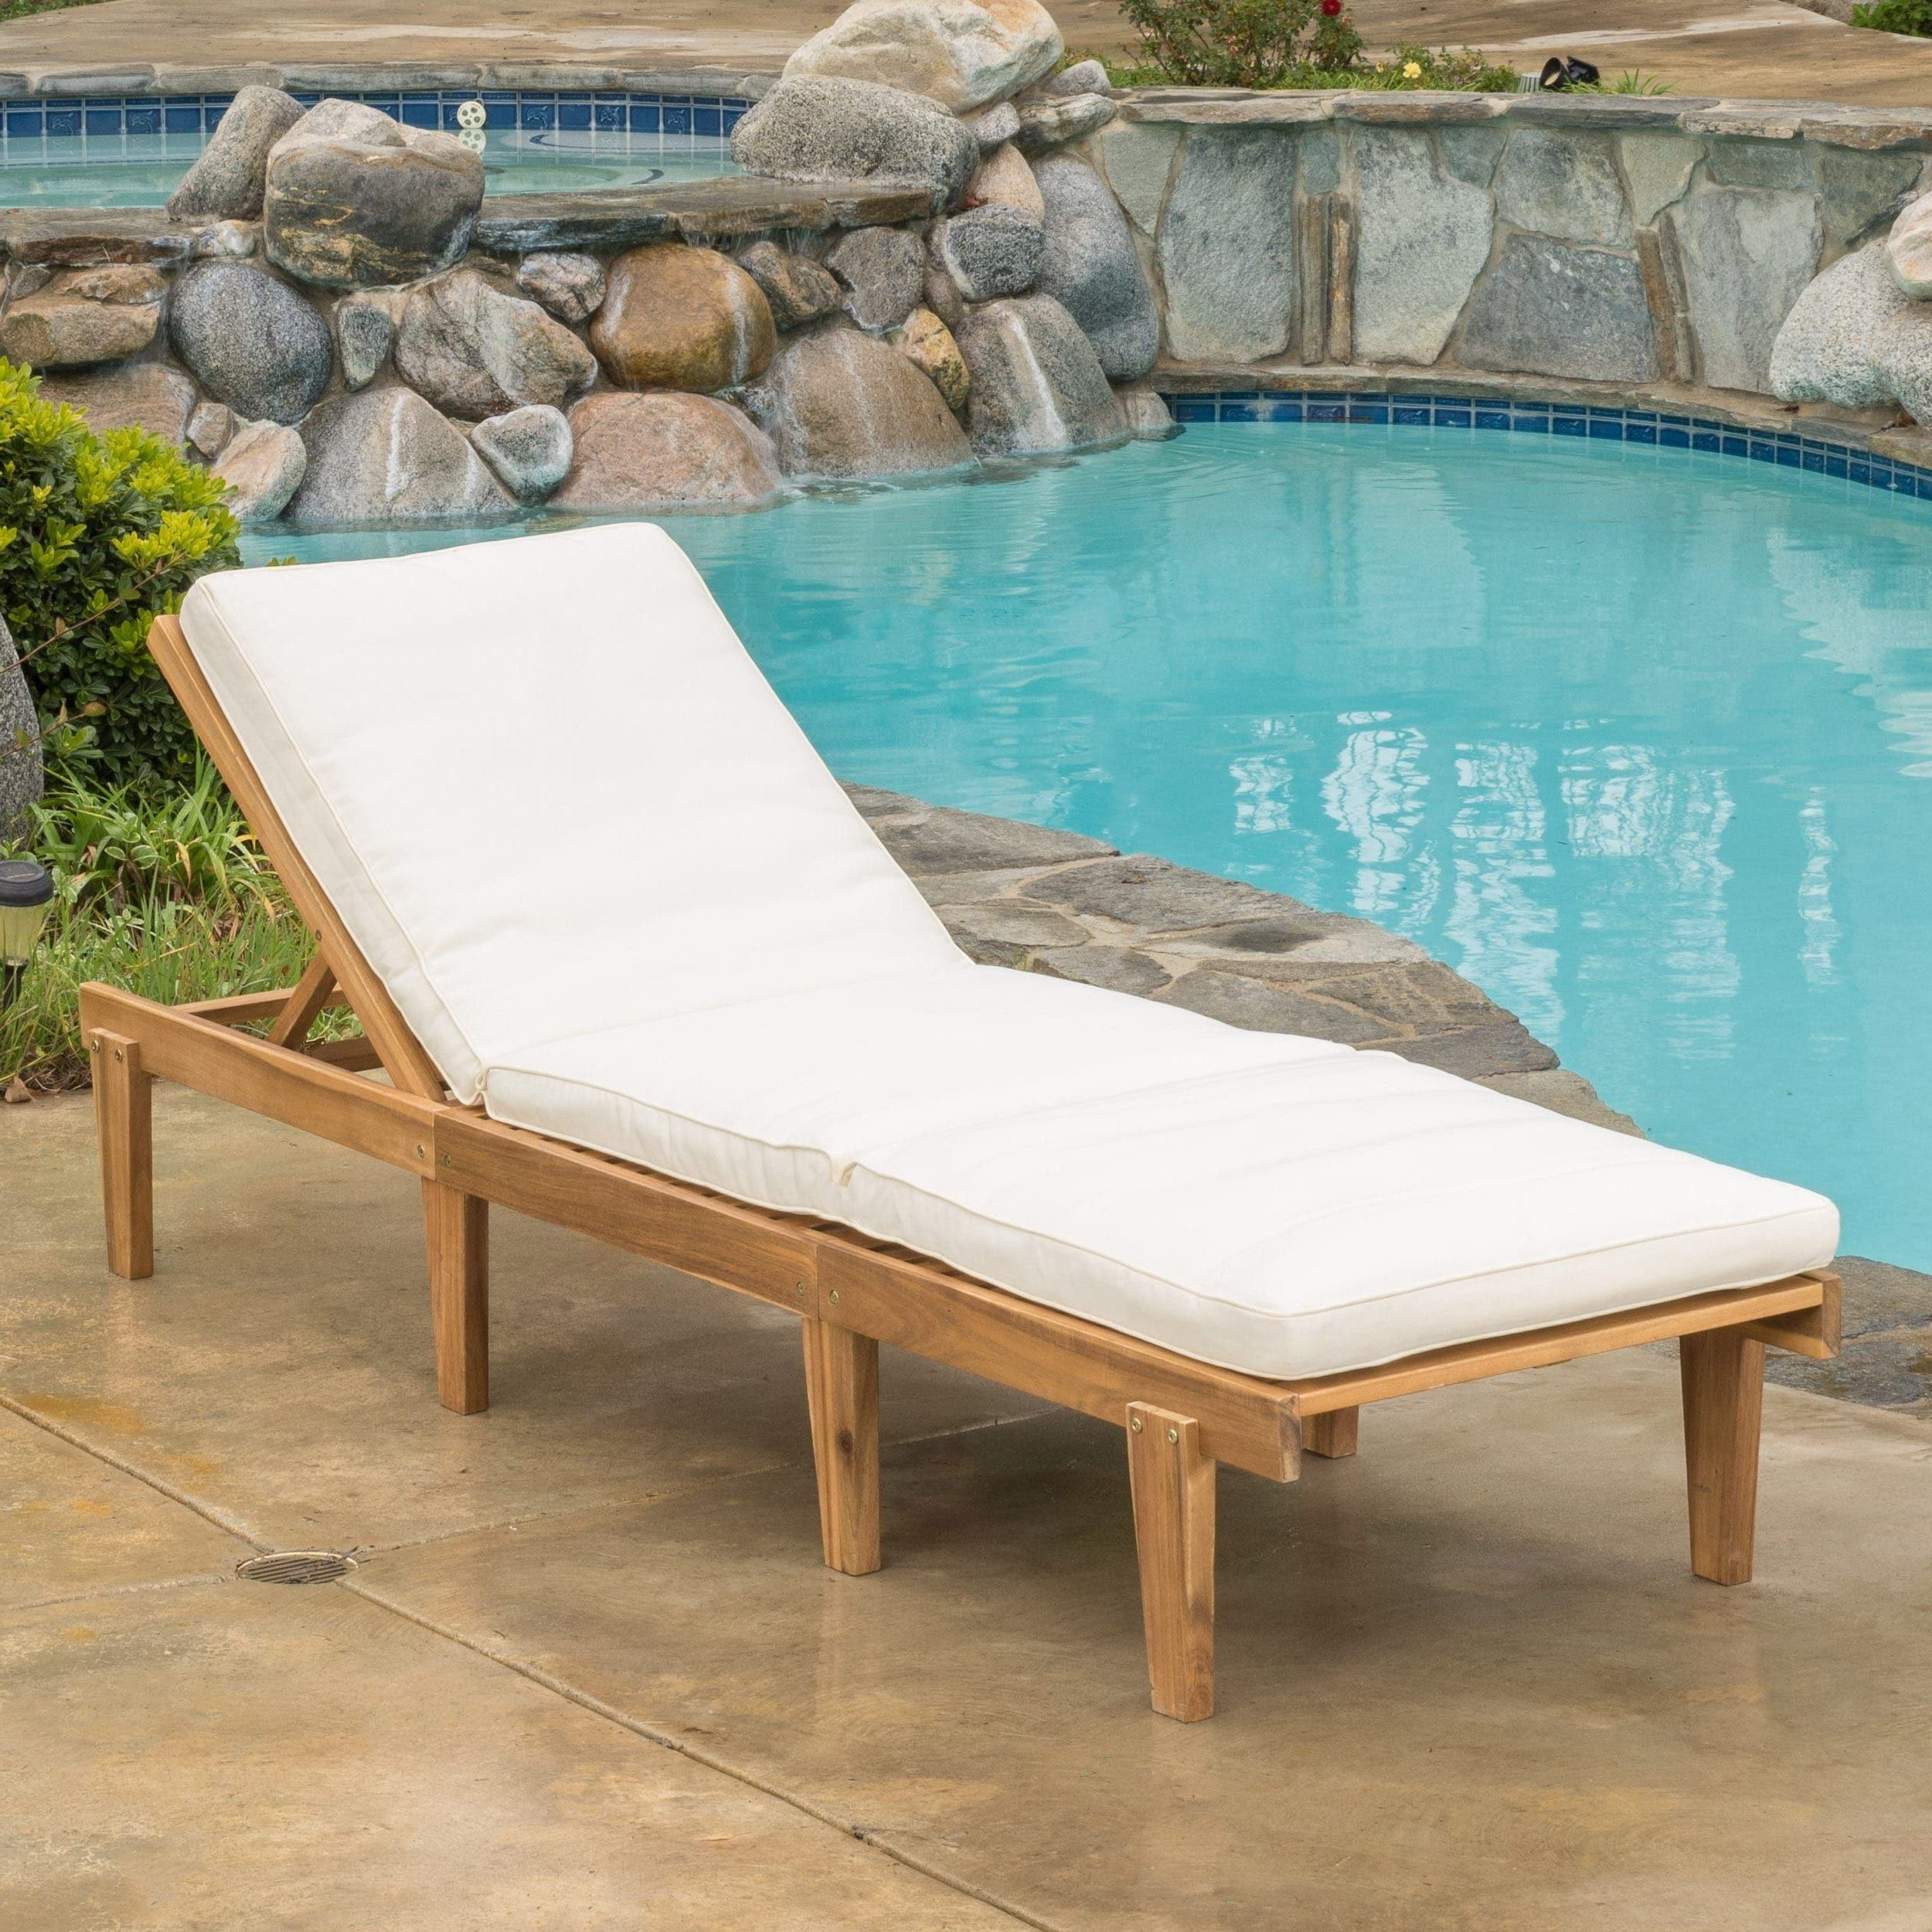 Ariana Acacia Outdoor Wood Chaise Lounge With Cushion Intended For Well Liked Wood Blue And White Cushion Outdoor Chaise Lounge Chairs (View 4 of 25)